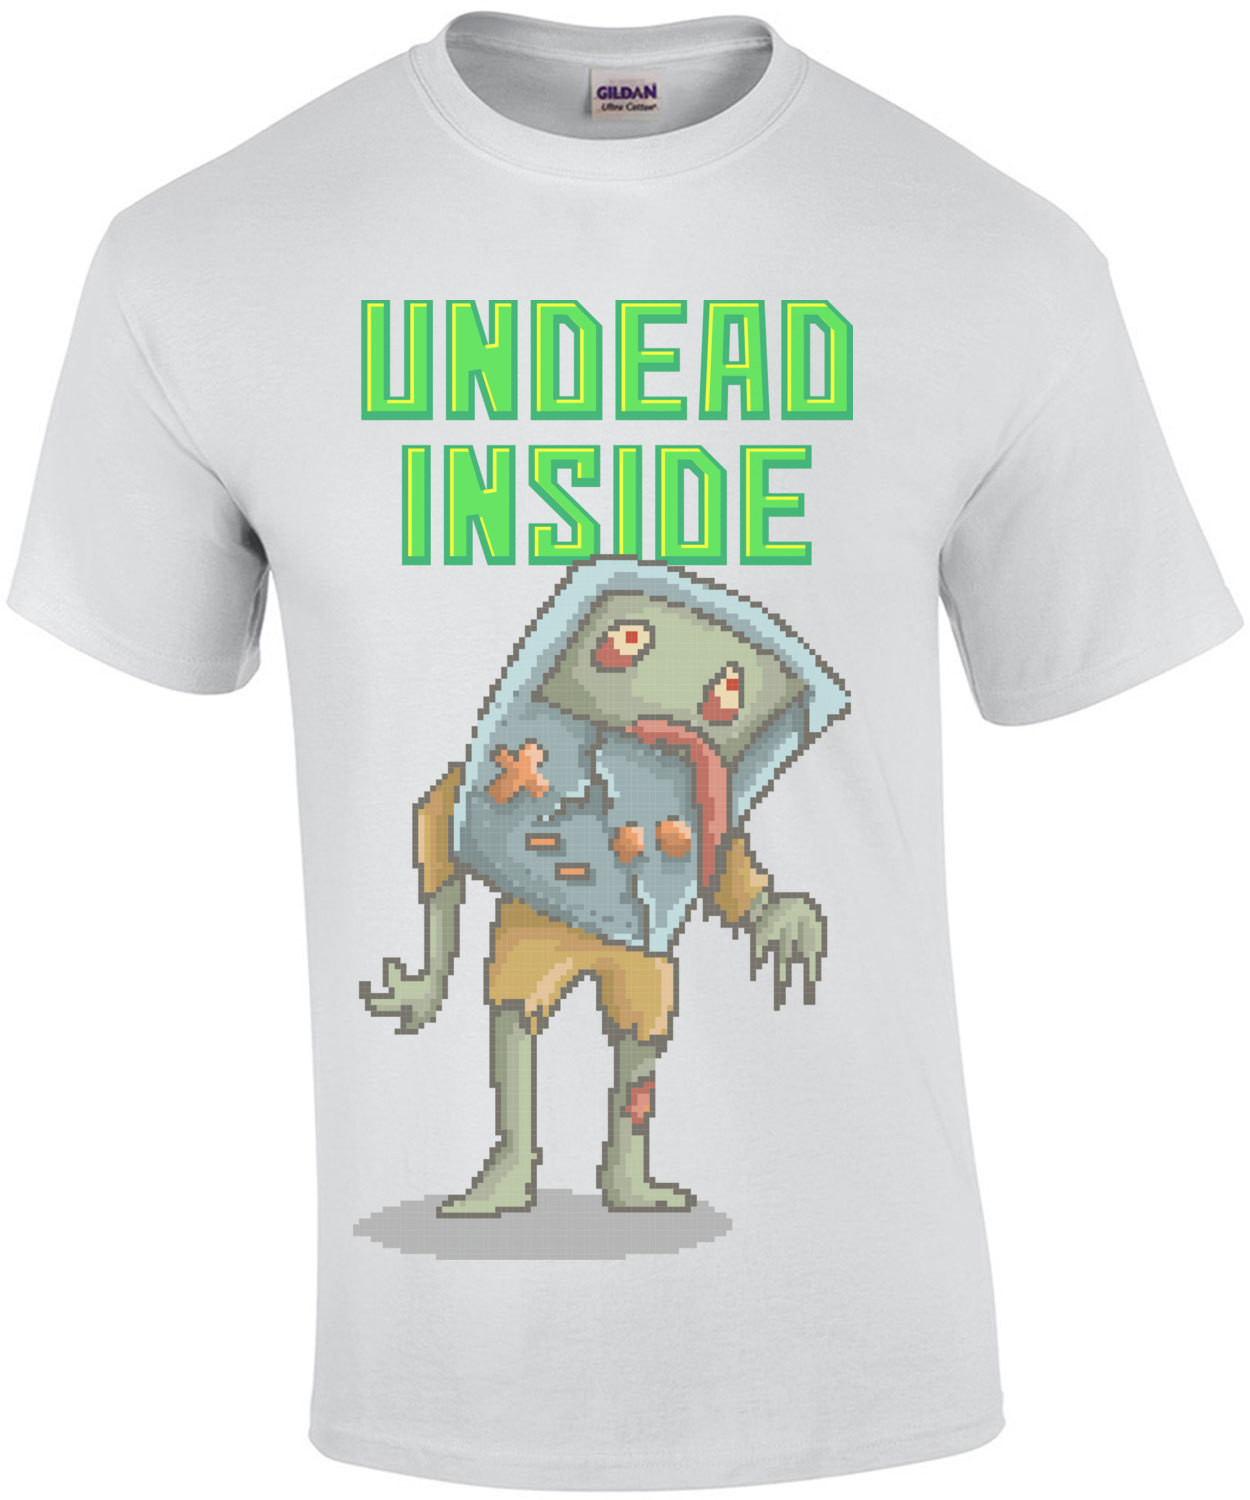 Undead Inside Retro Zombie Game Boy T-Shirt